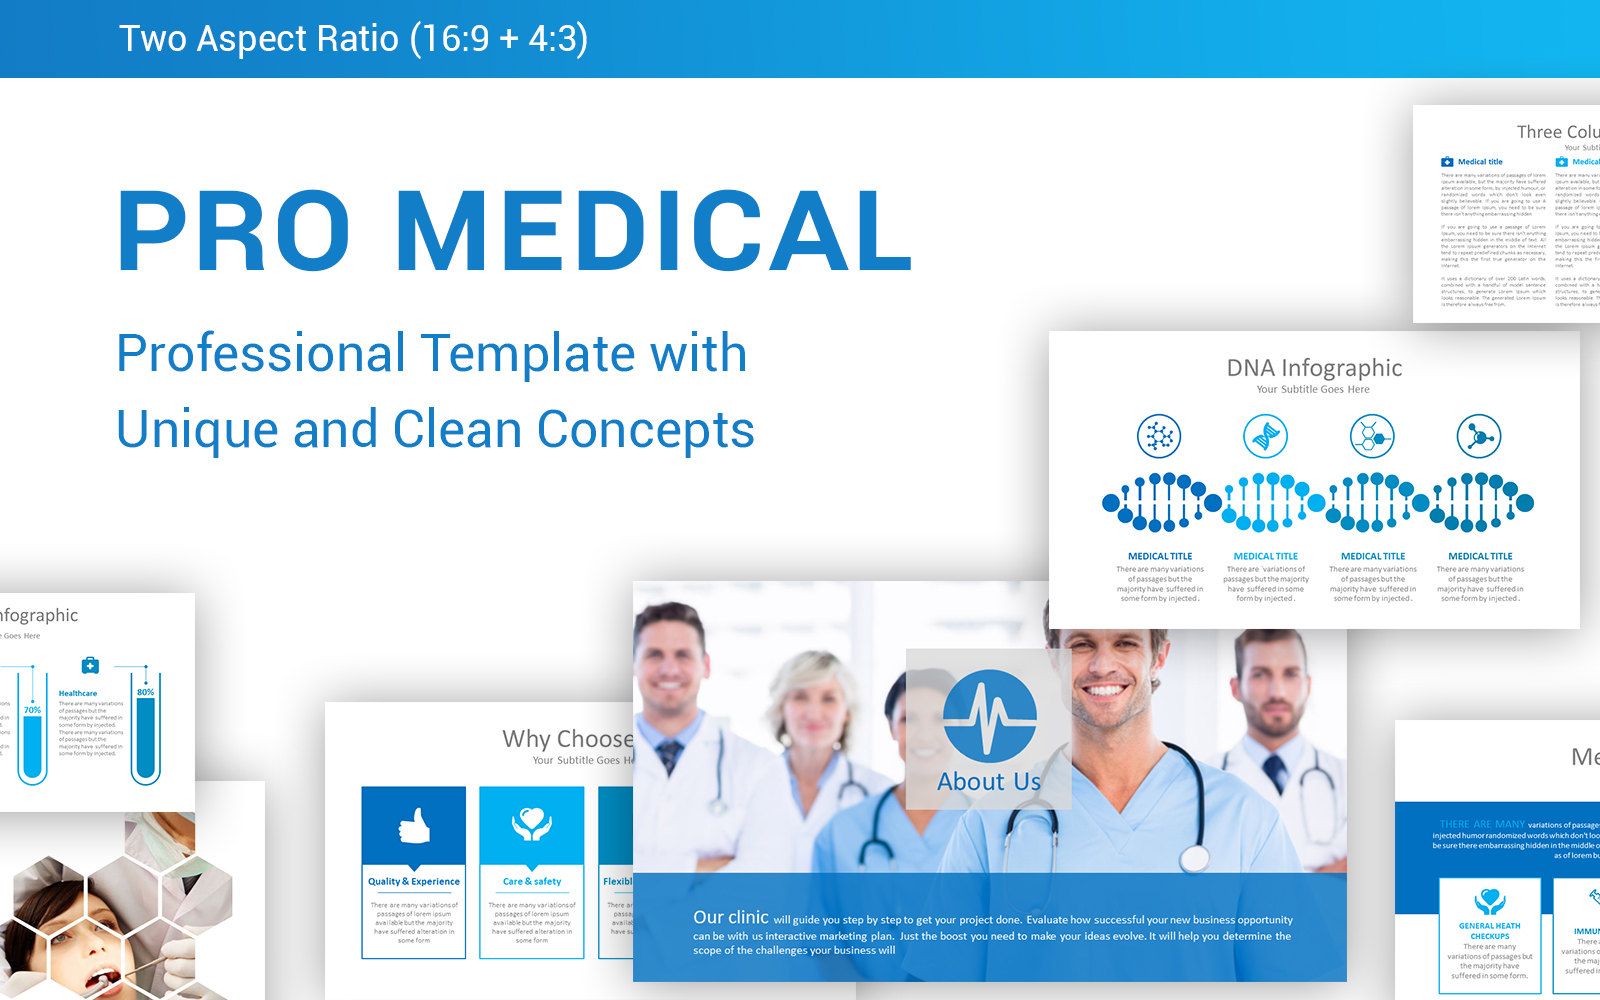 Pro Medical Presentation PowerPoint Template